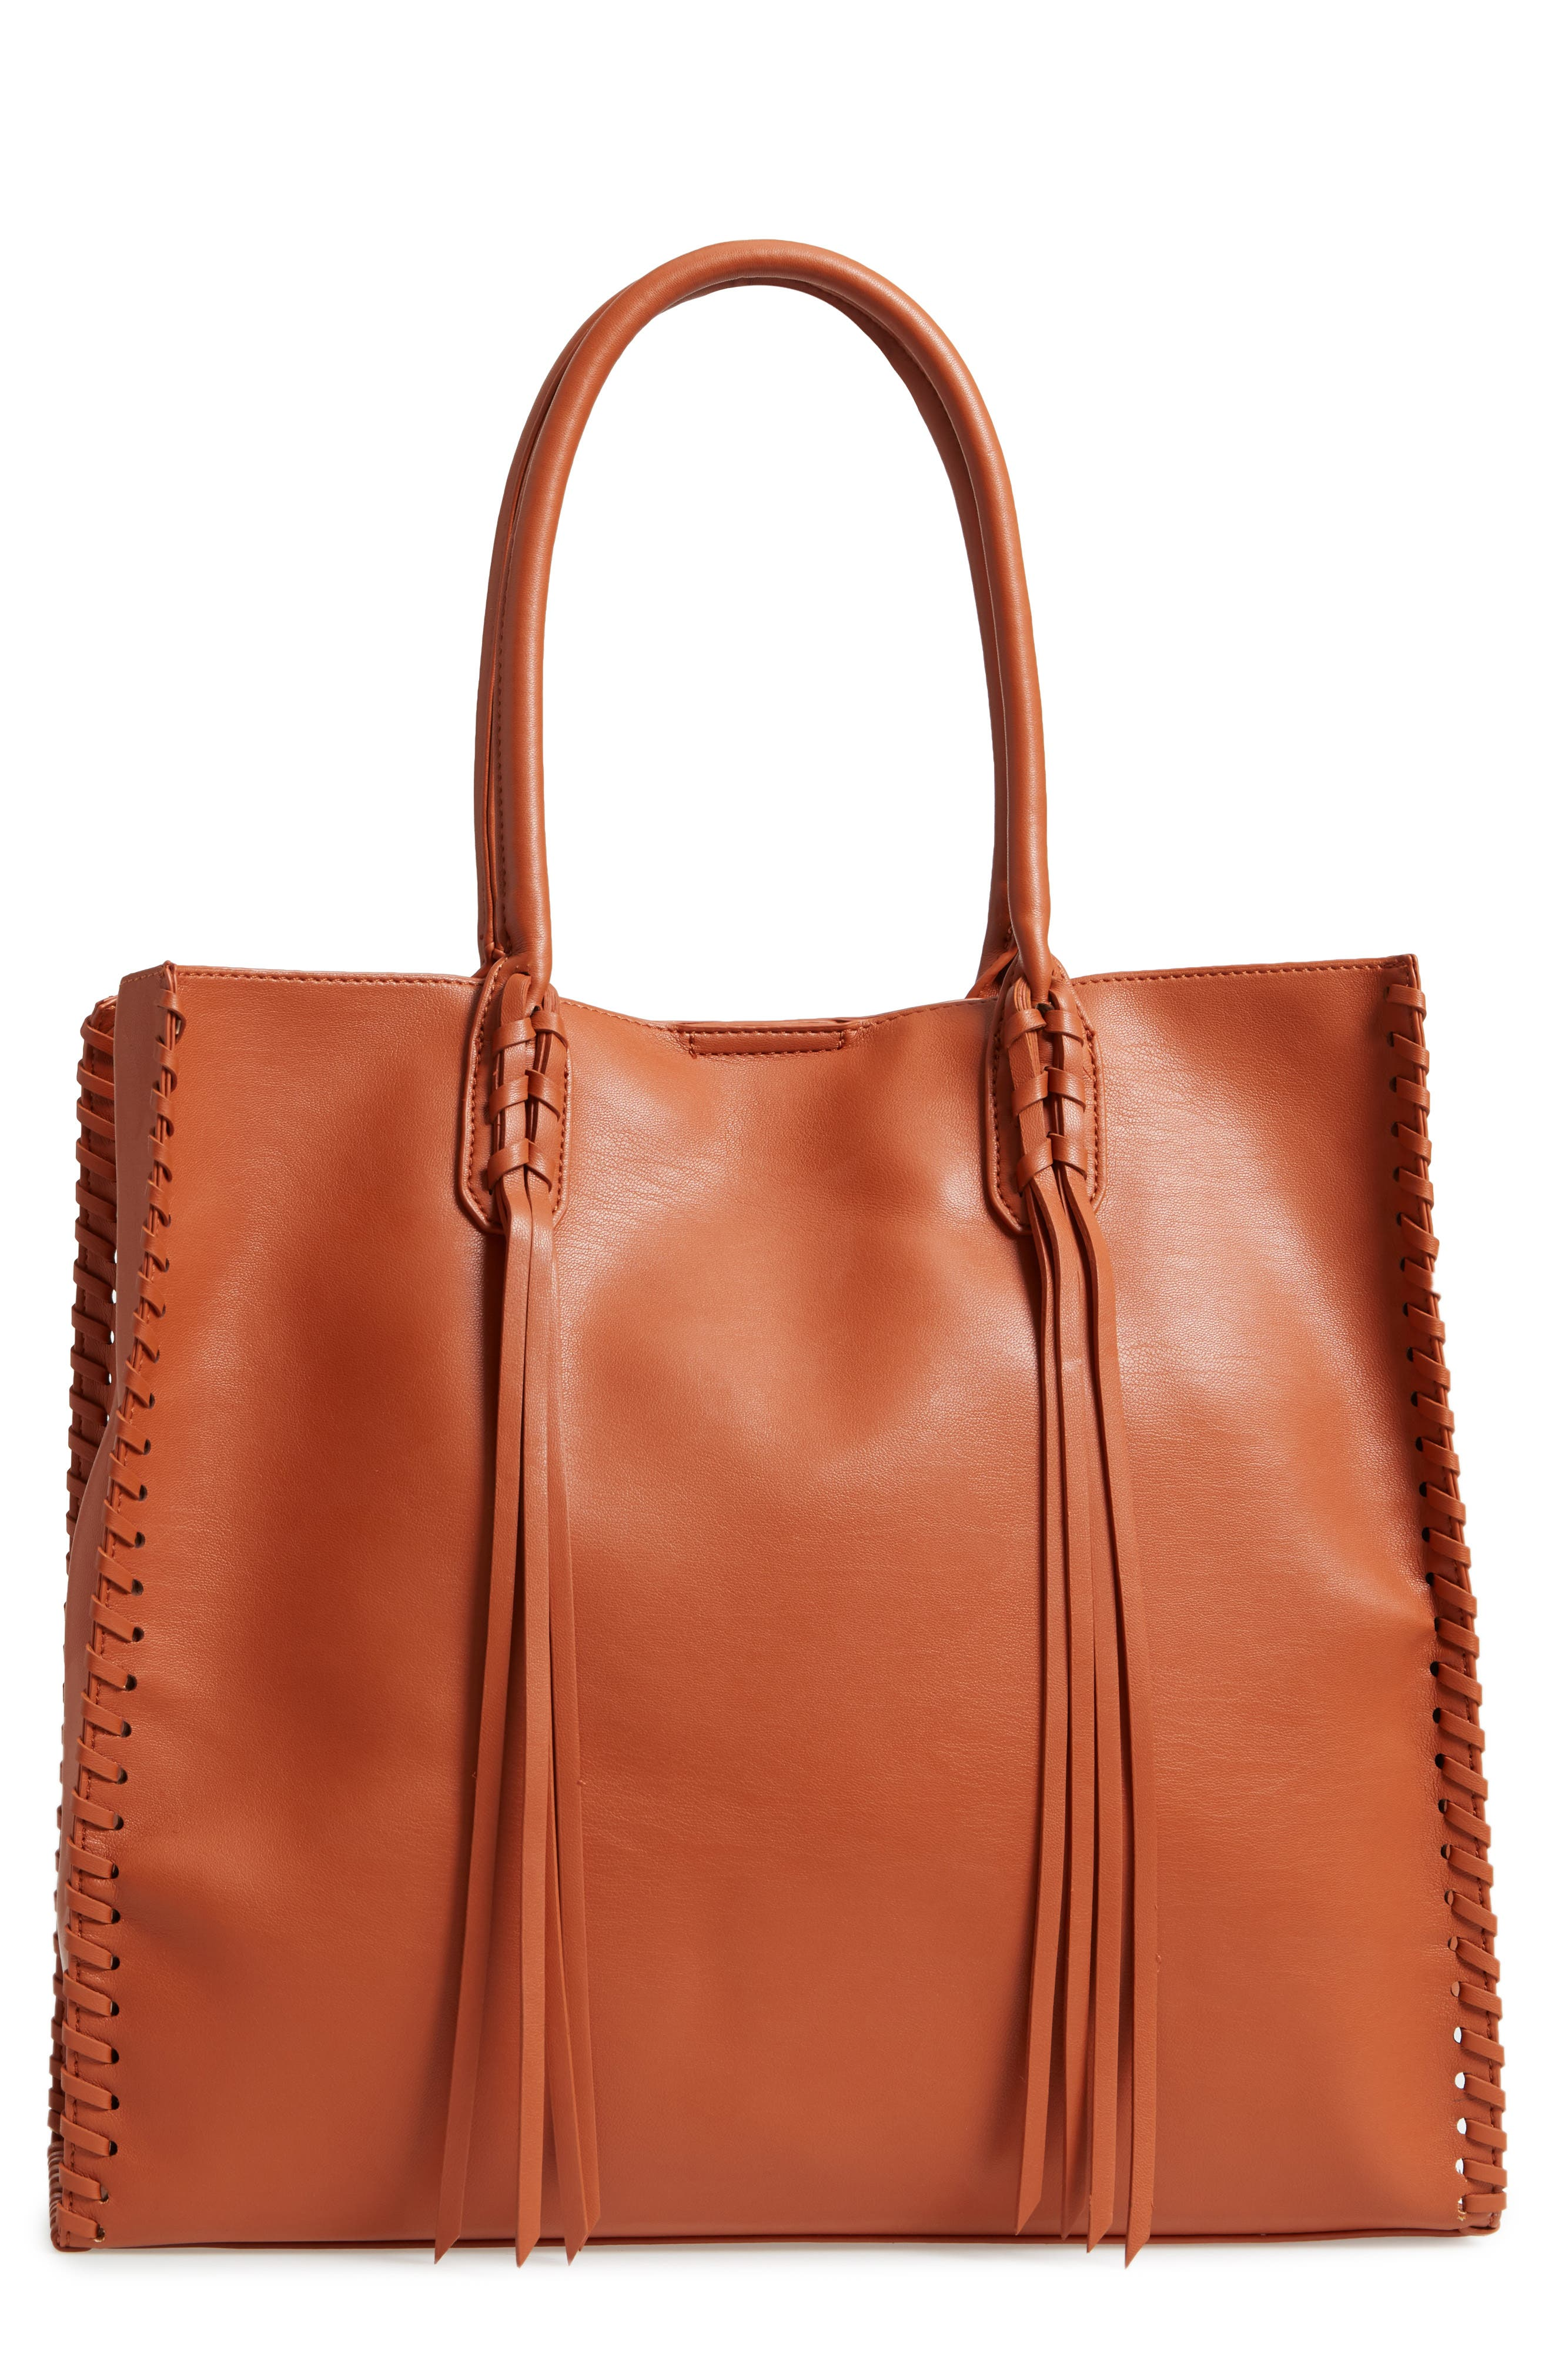 Cadence Faux Leather Whipstitch Tote,                             Main thumbnail 1, color,                             200